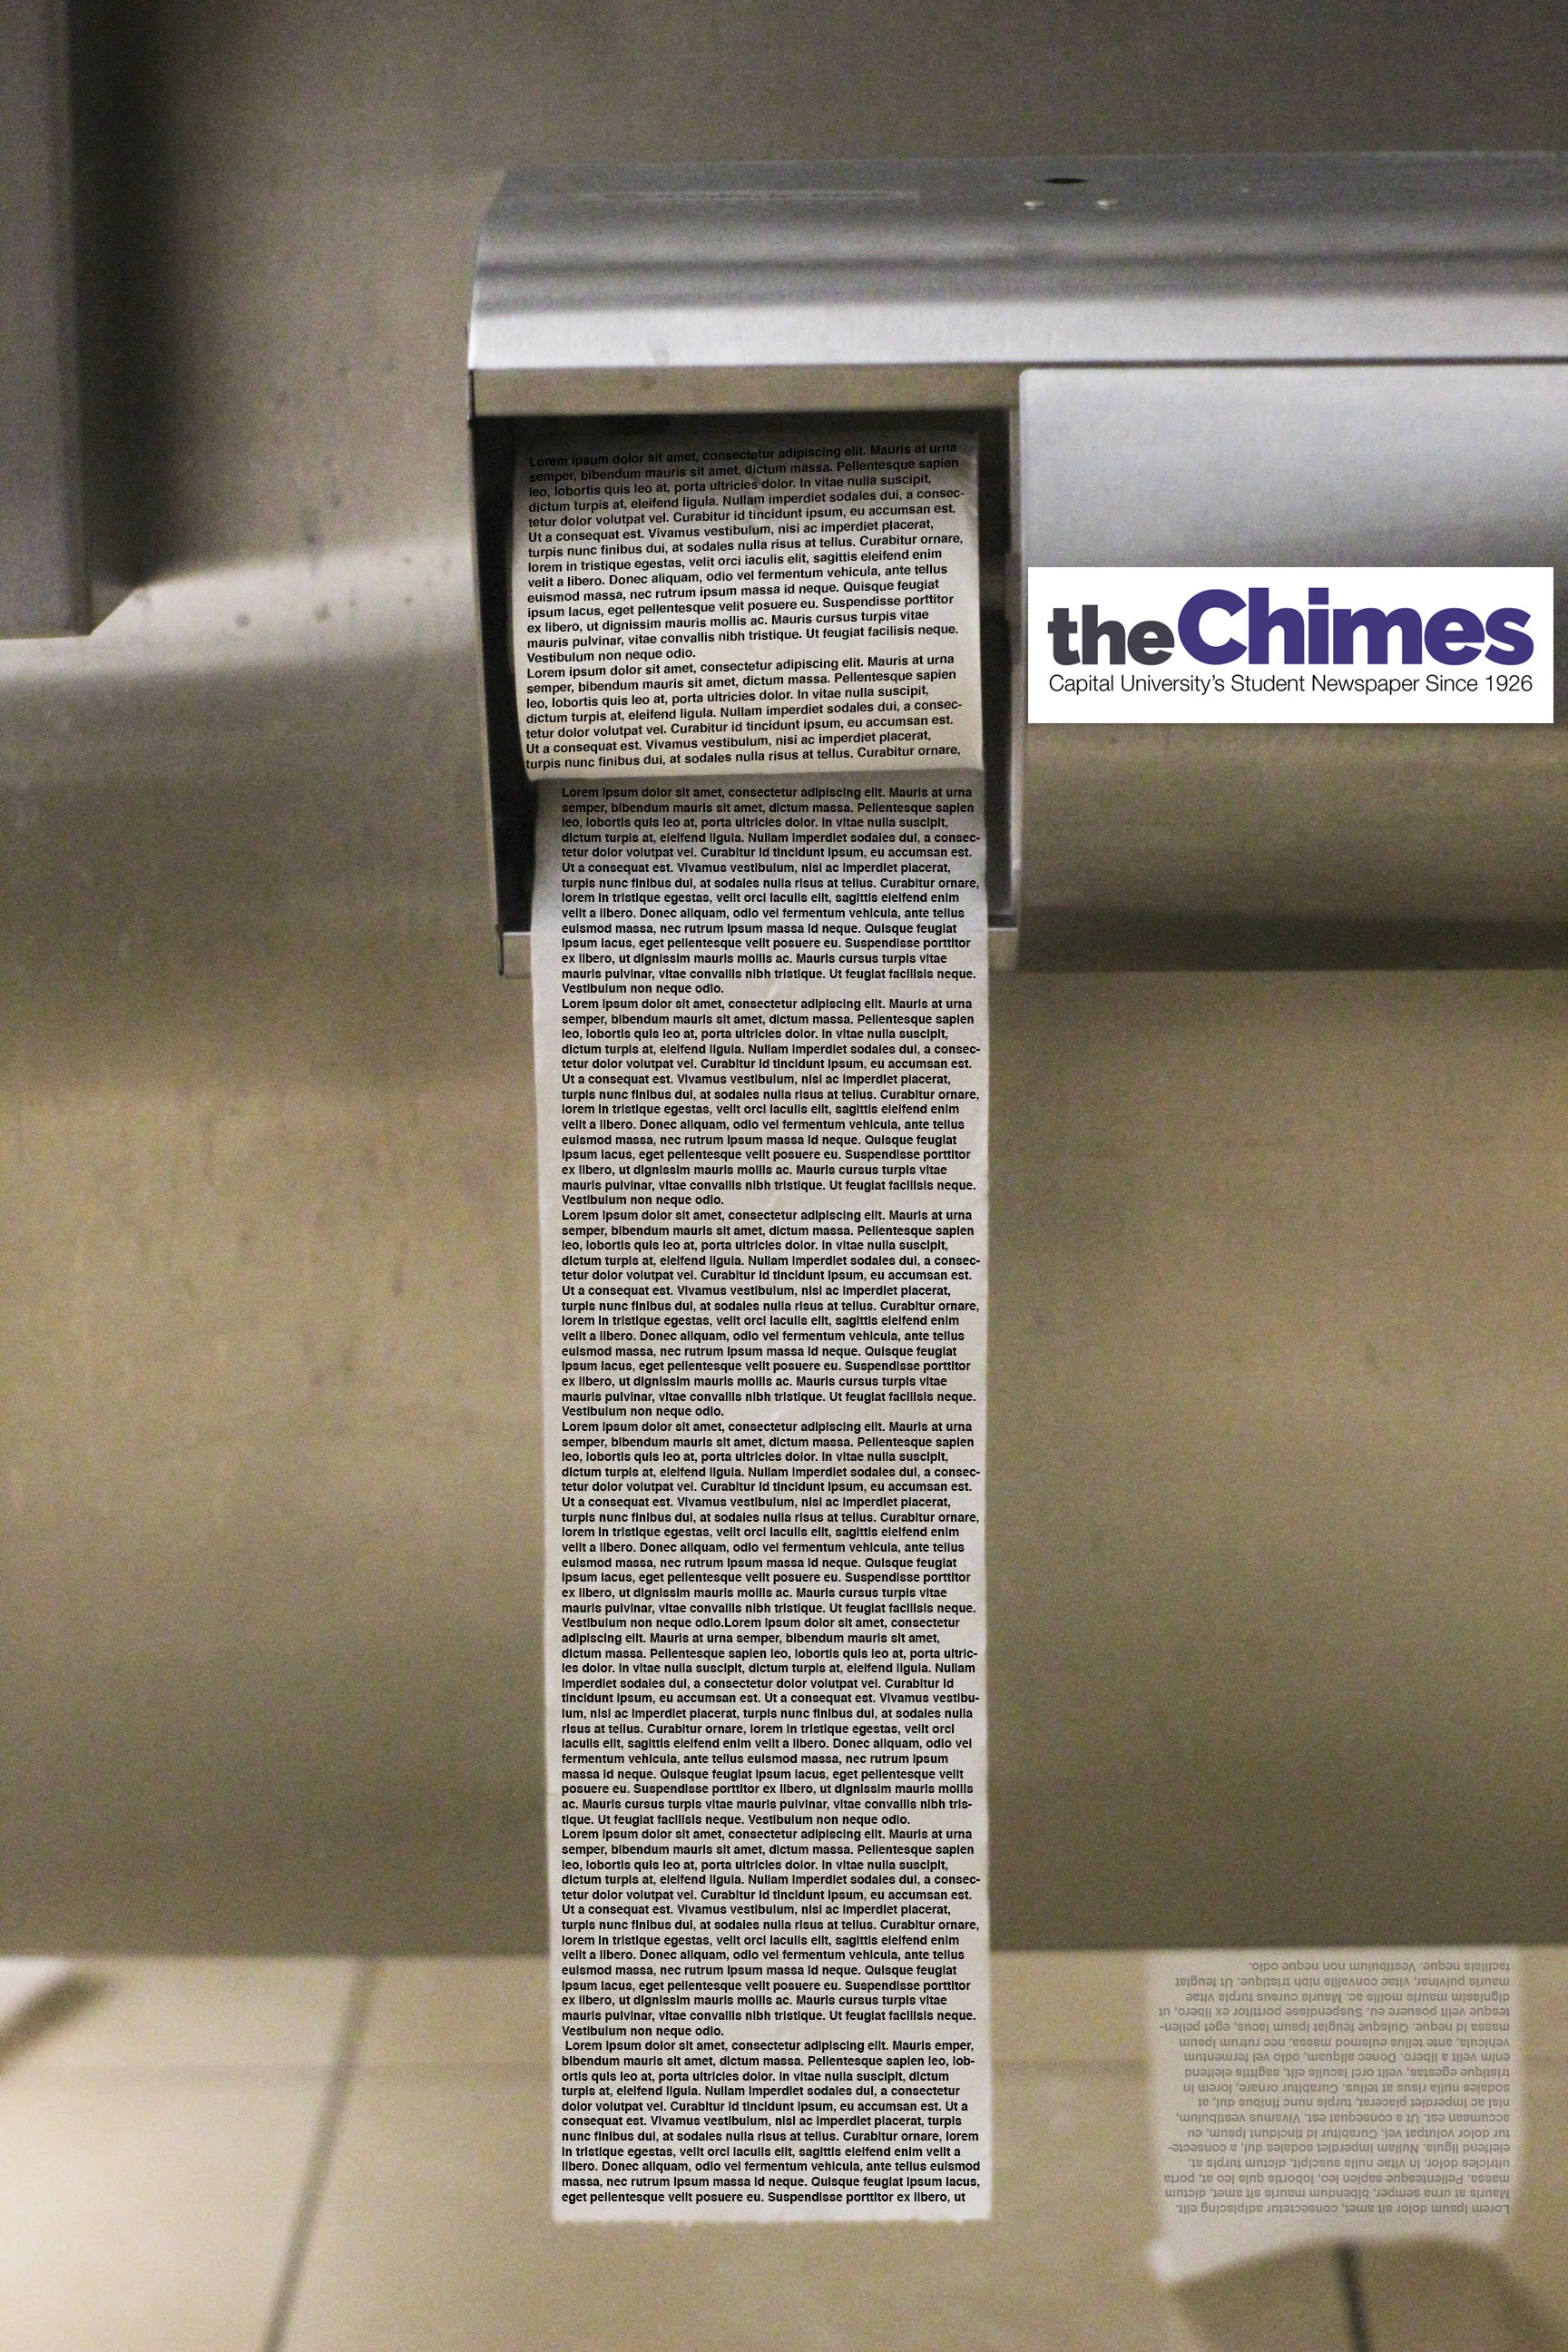 The Chimes moves to printing on toilet paper due to budget cuts